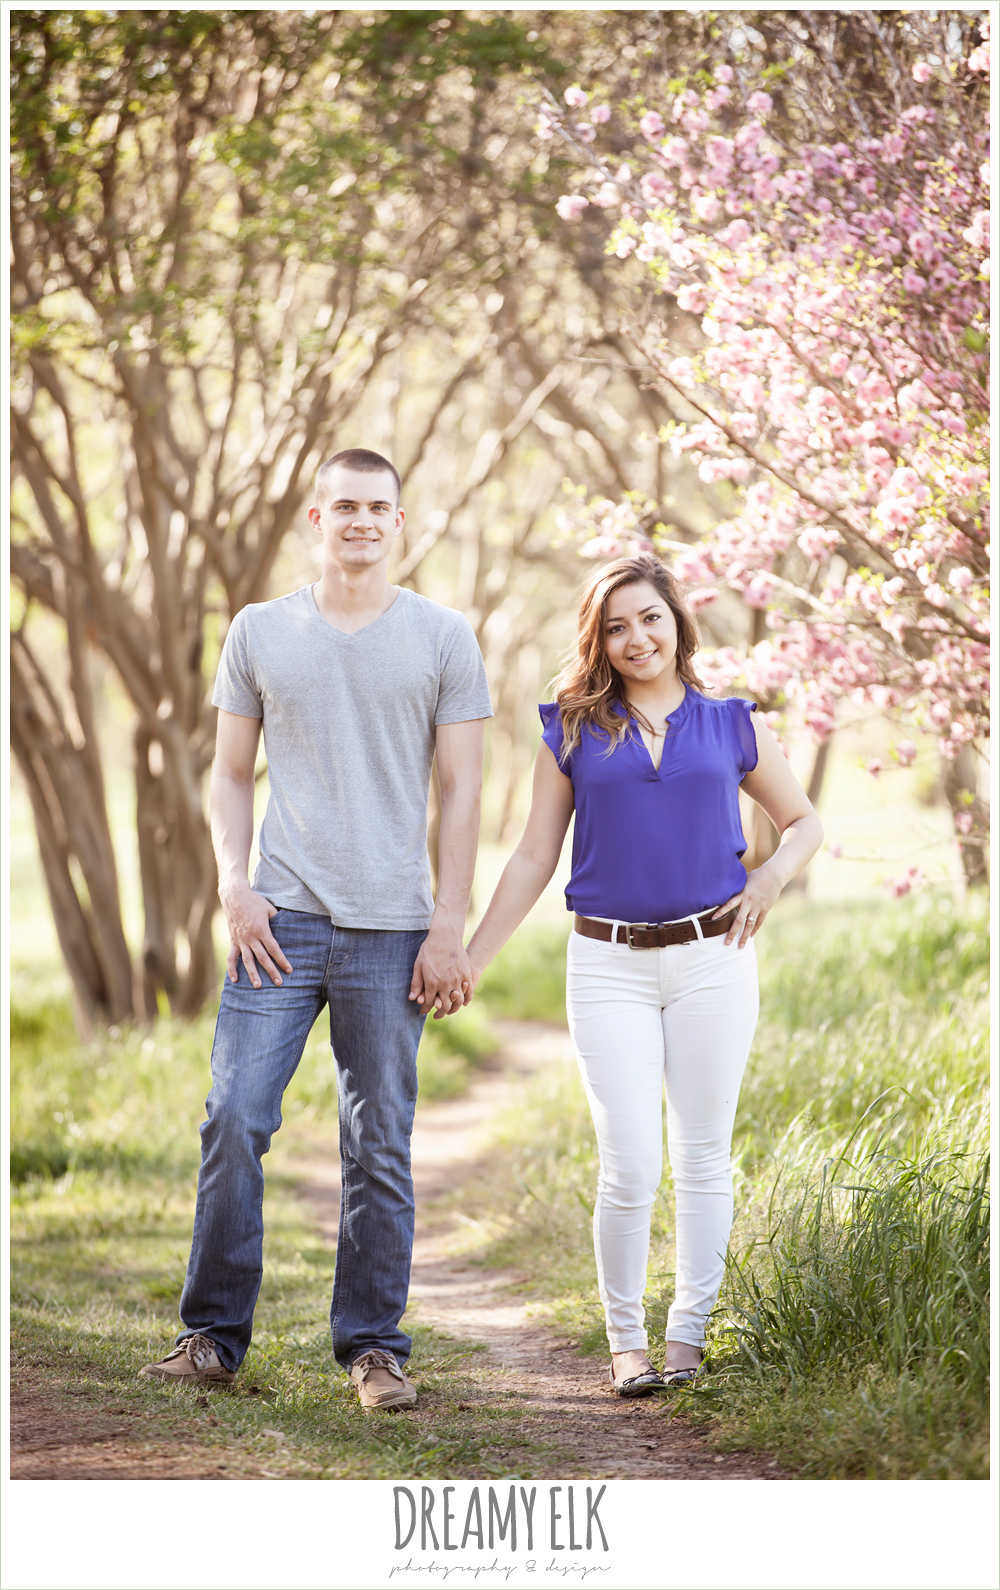 auditorium shores, downtown austin spring engagement photo {dreamy elk photography and design}